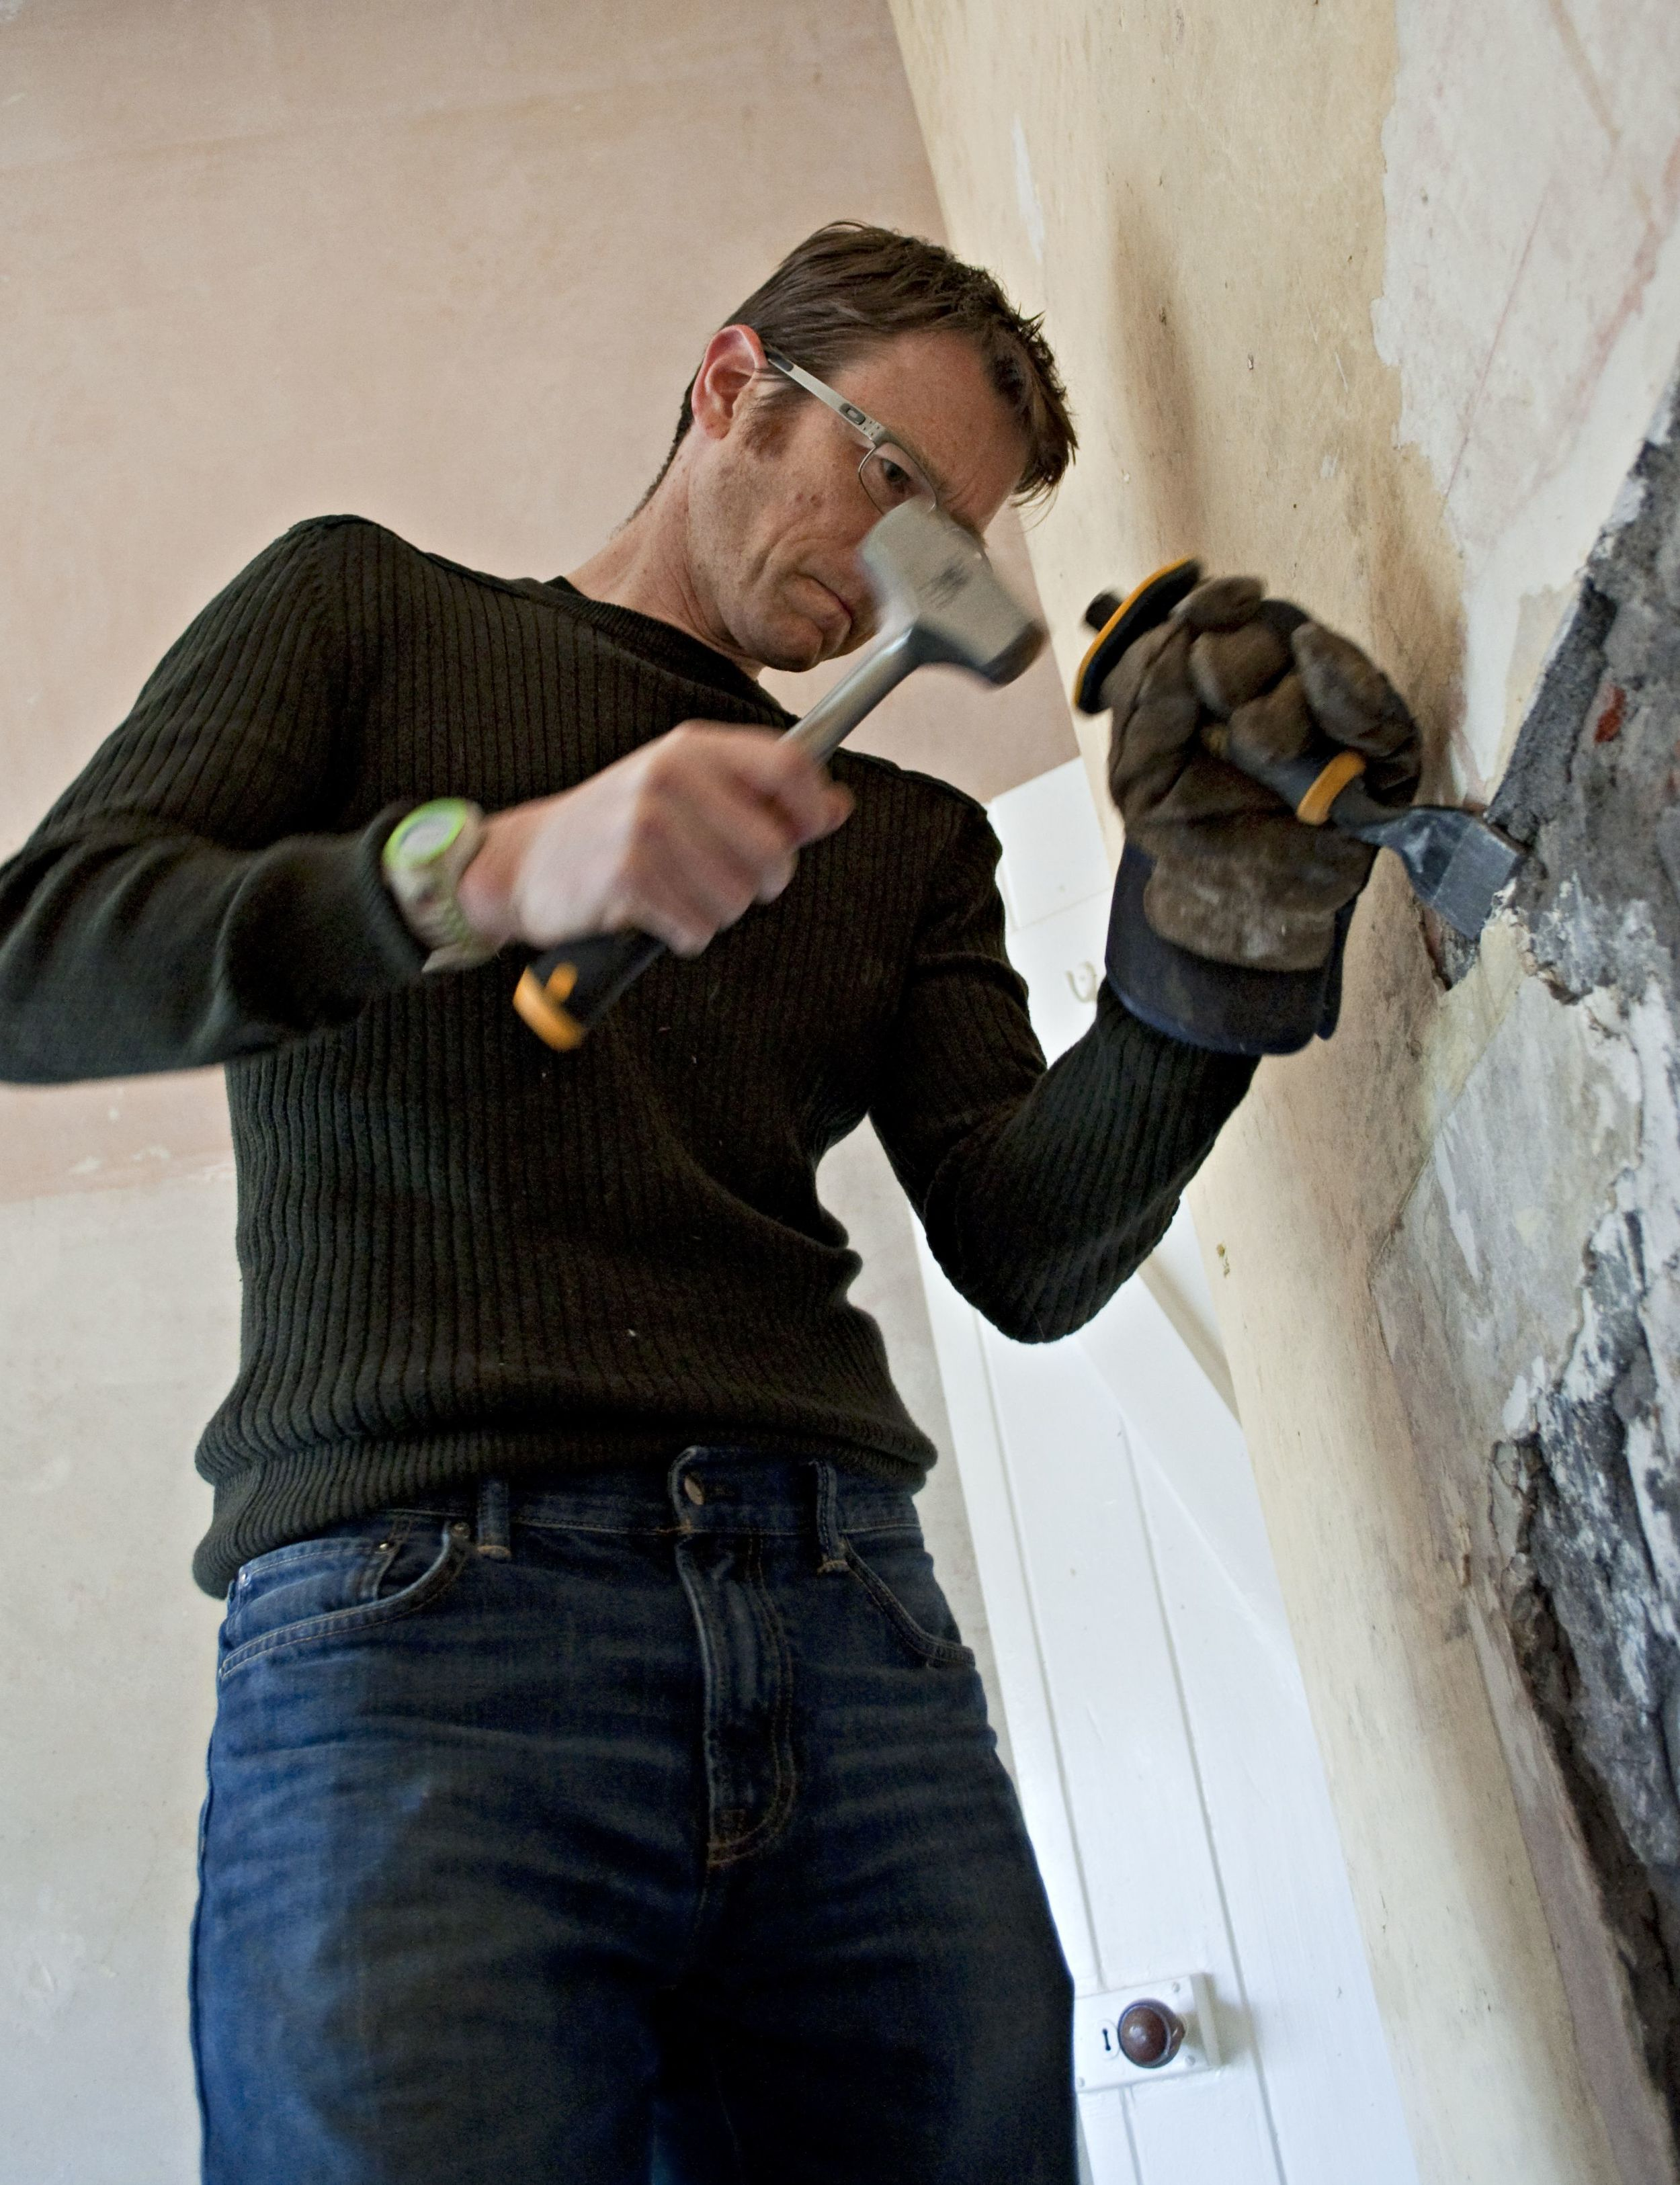 Getting serious with the lump hammer